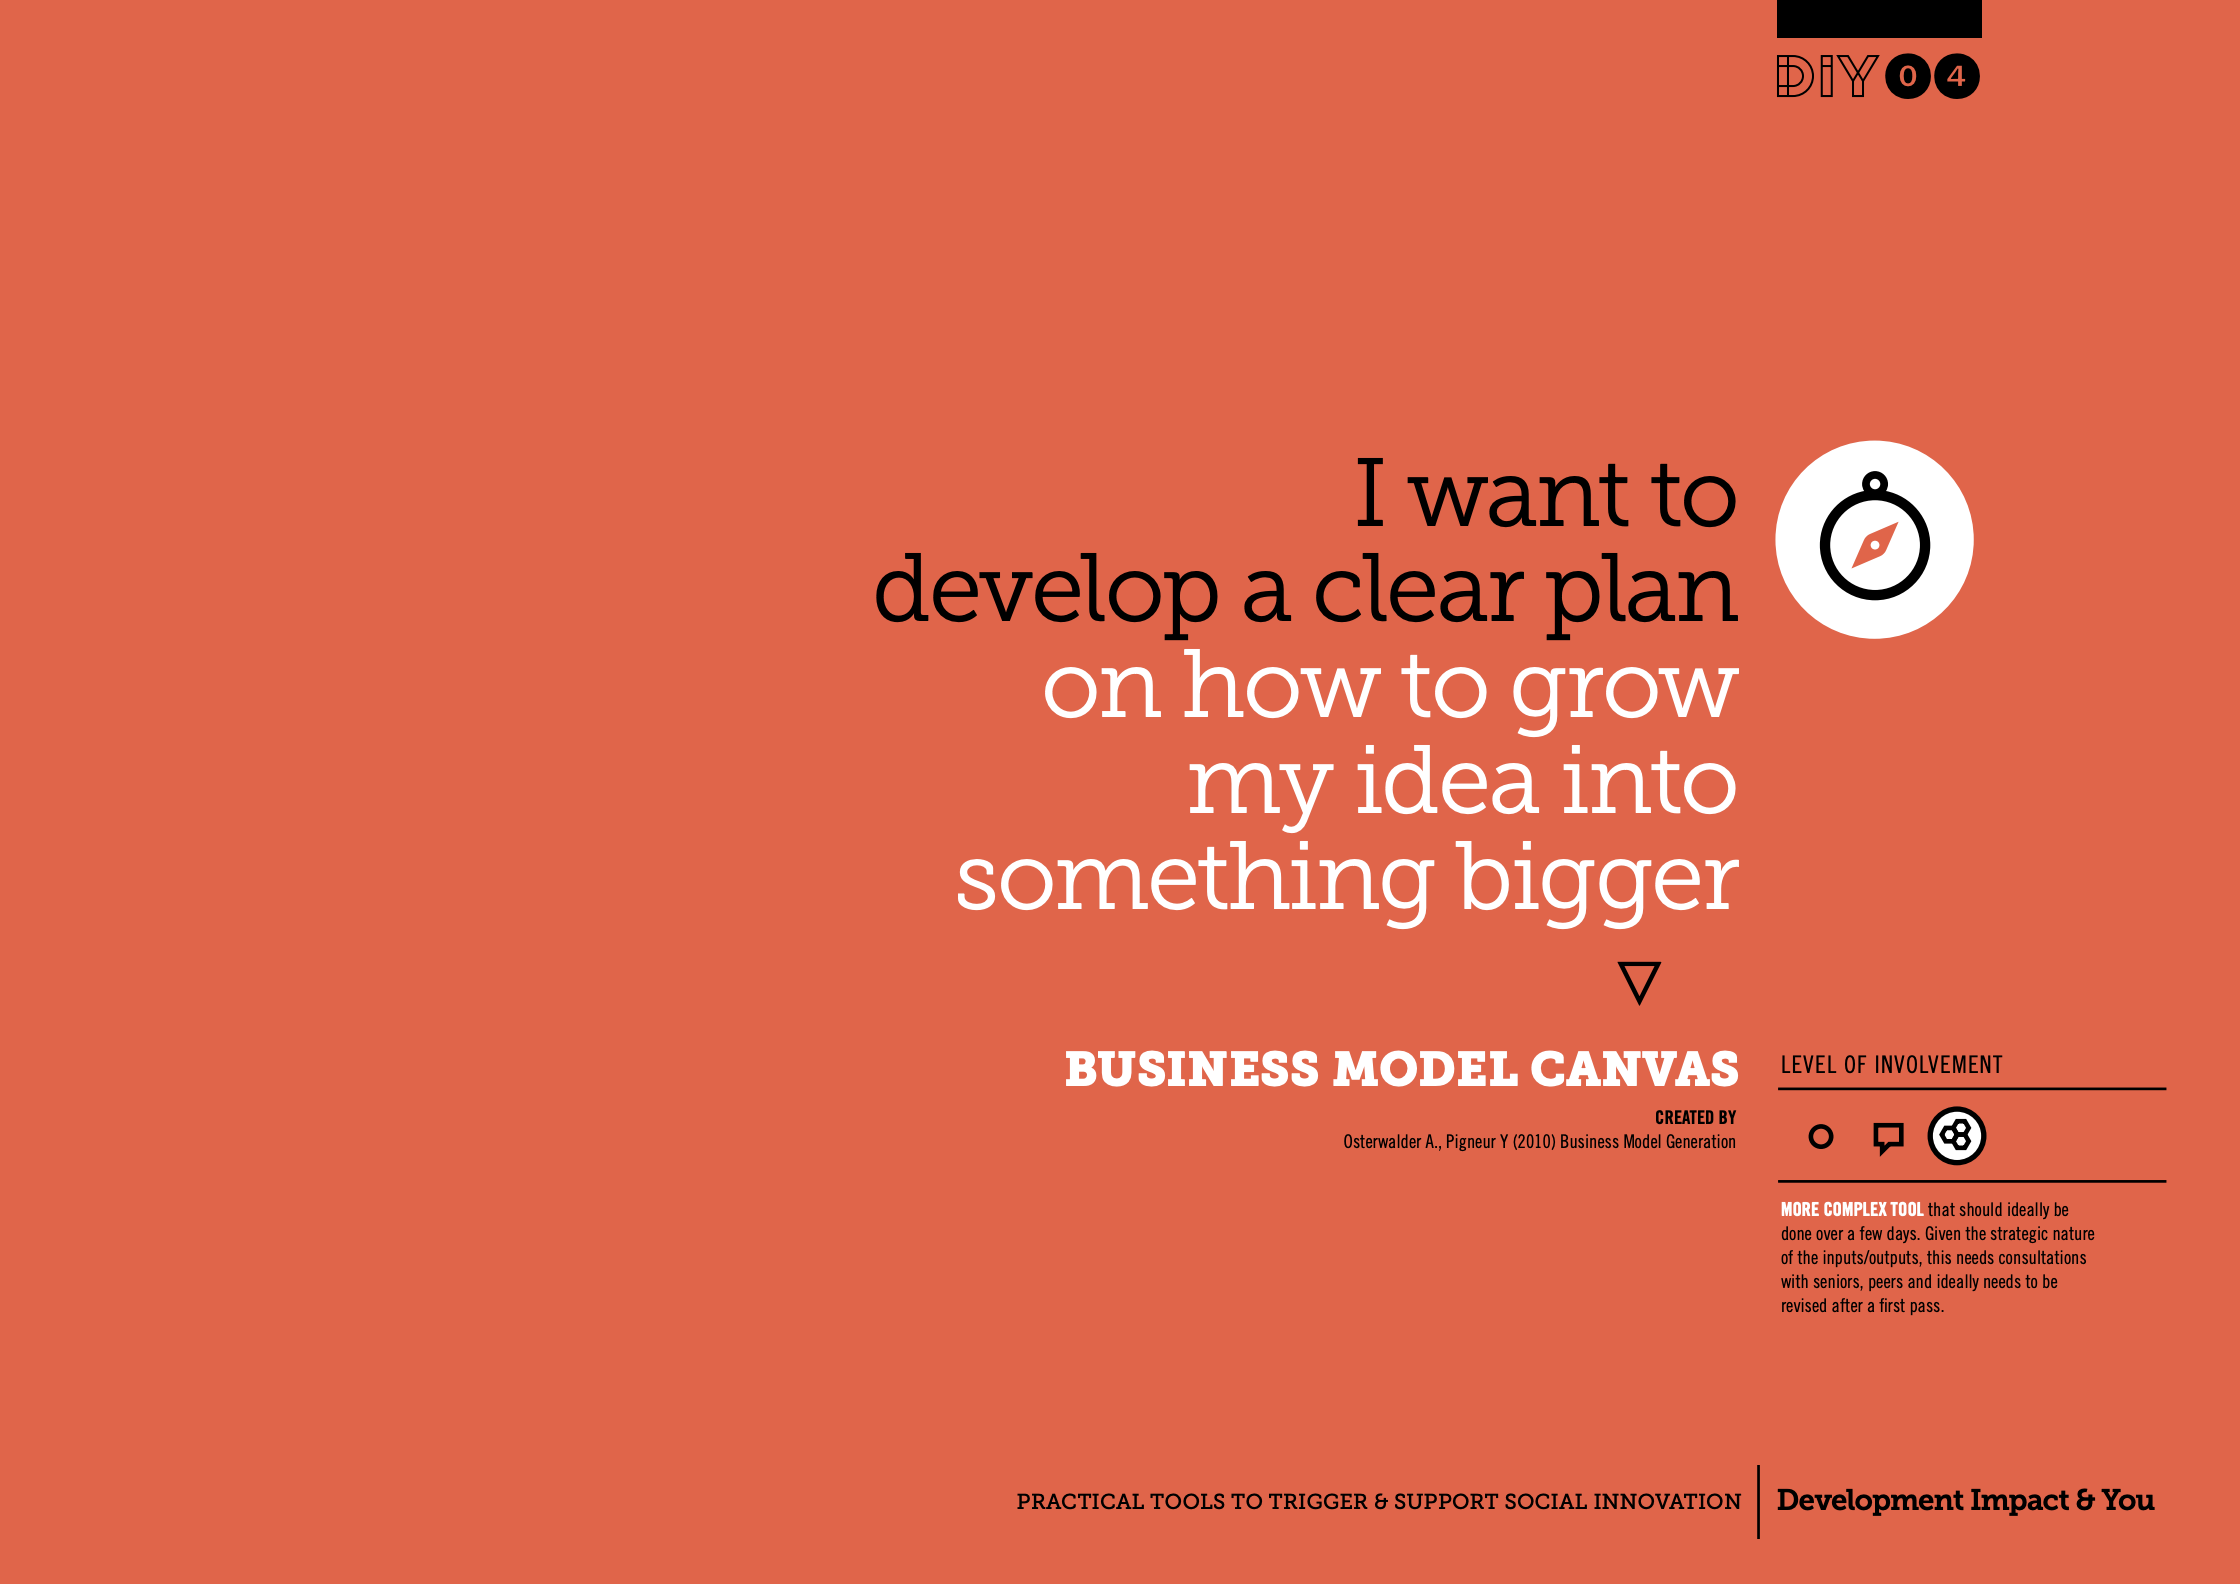 「The Business Model Canvas」